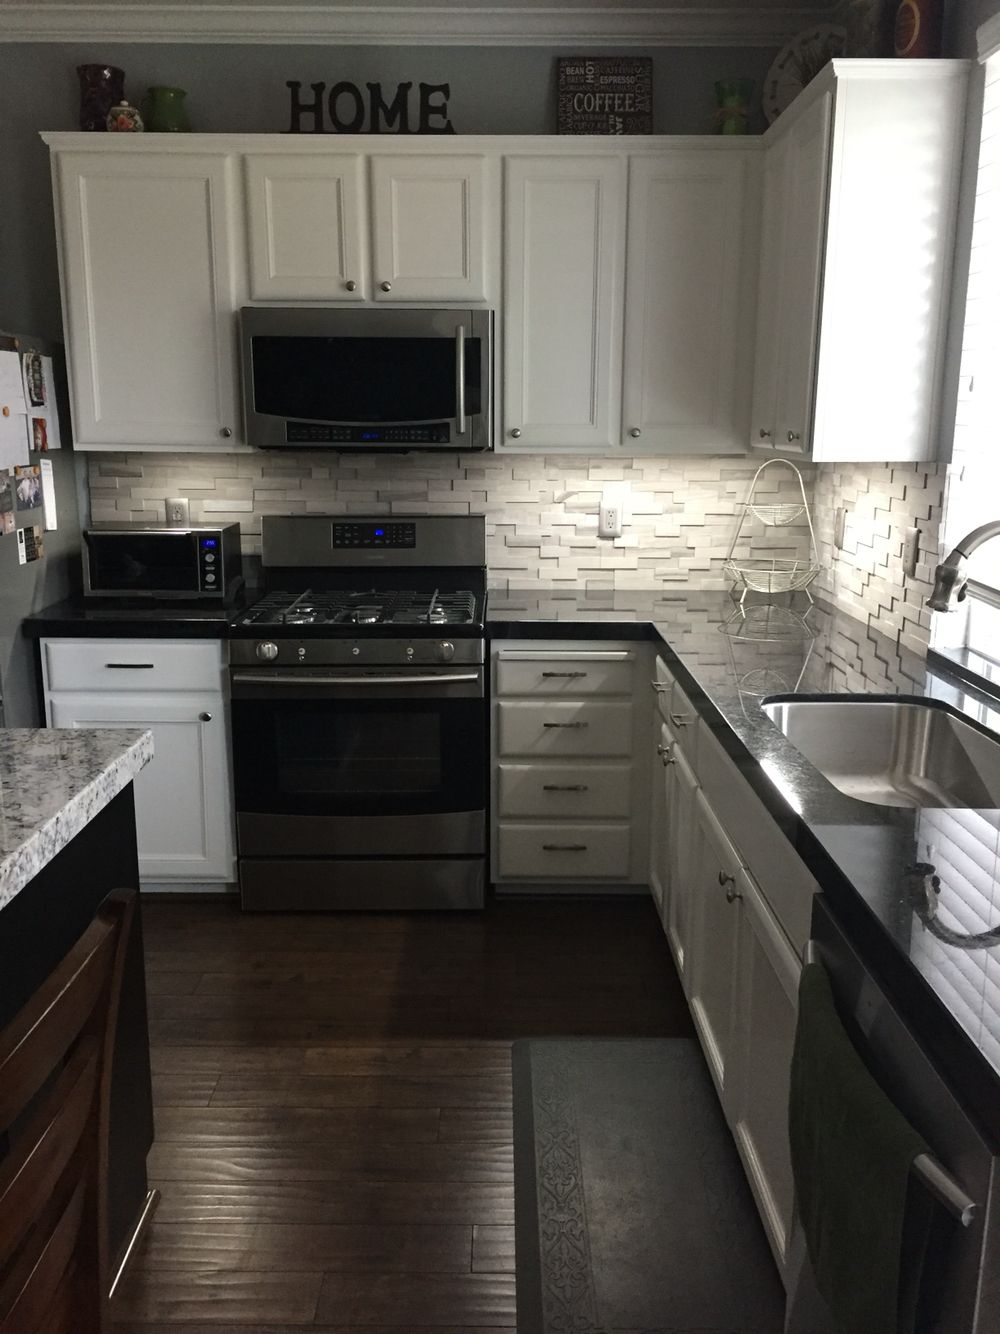 Gray And White Swirl Subway Tile For Backsplash In Kitchen